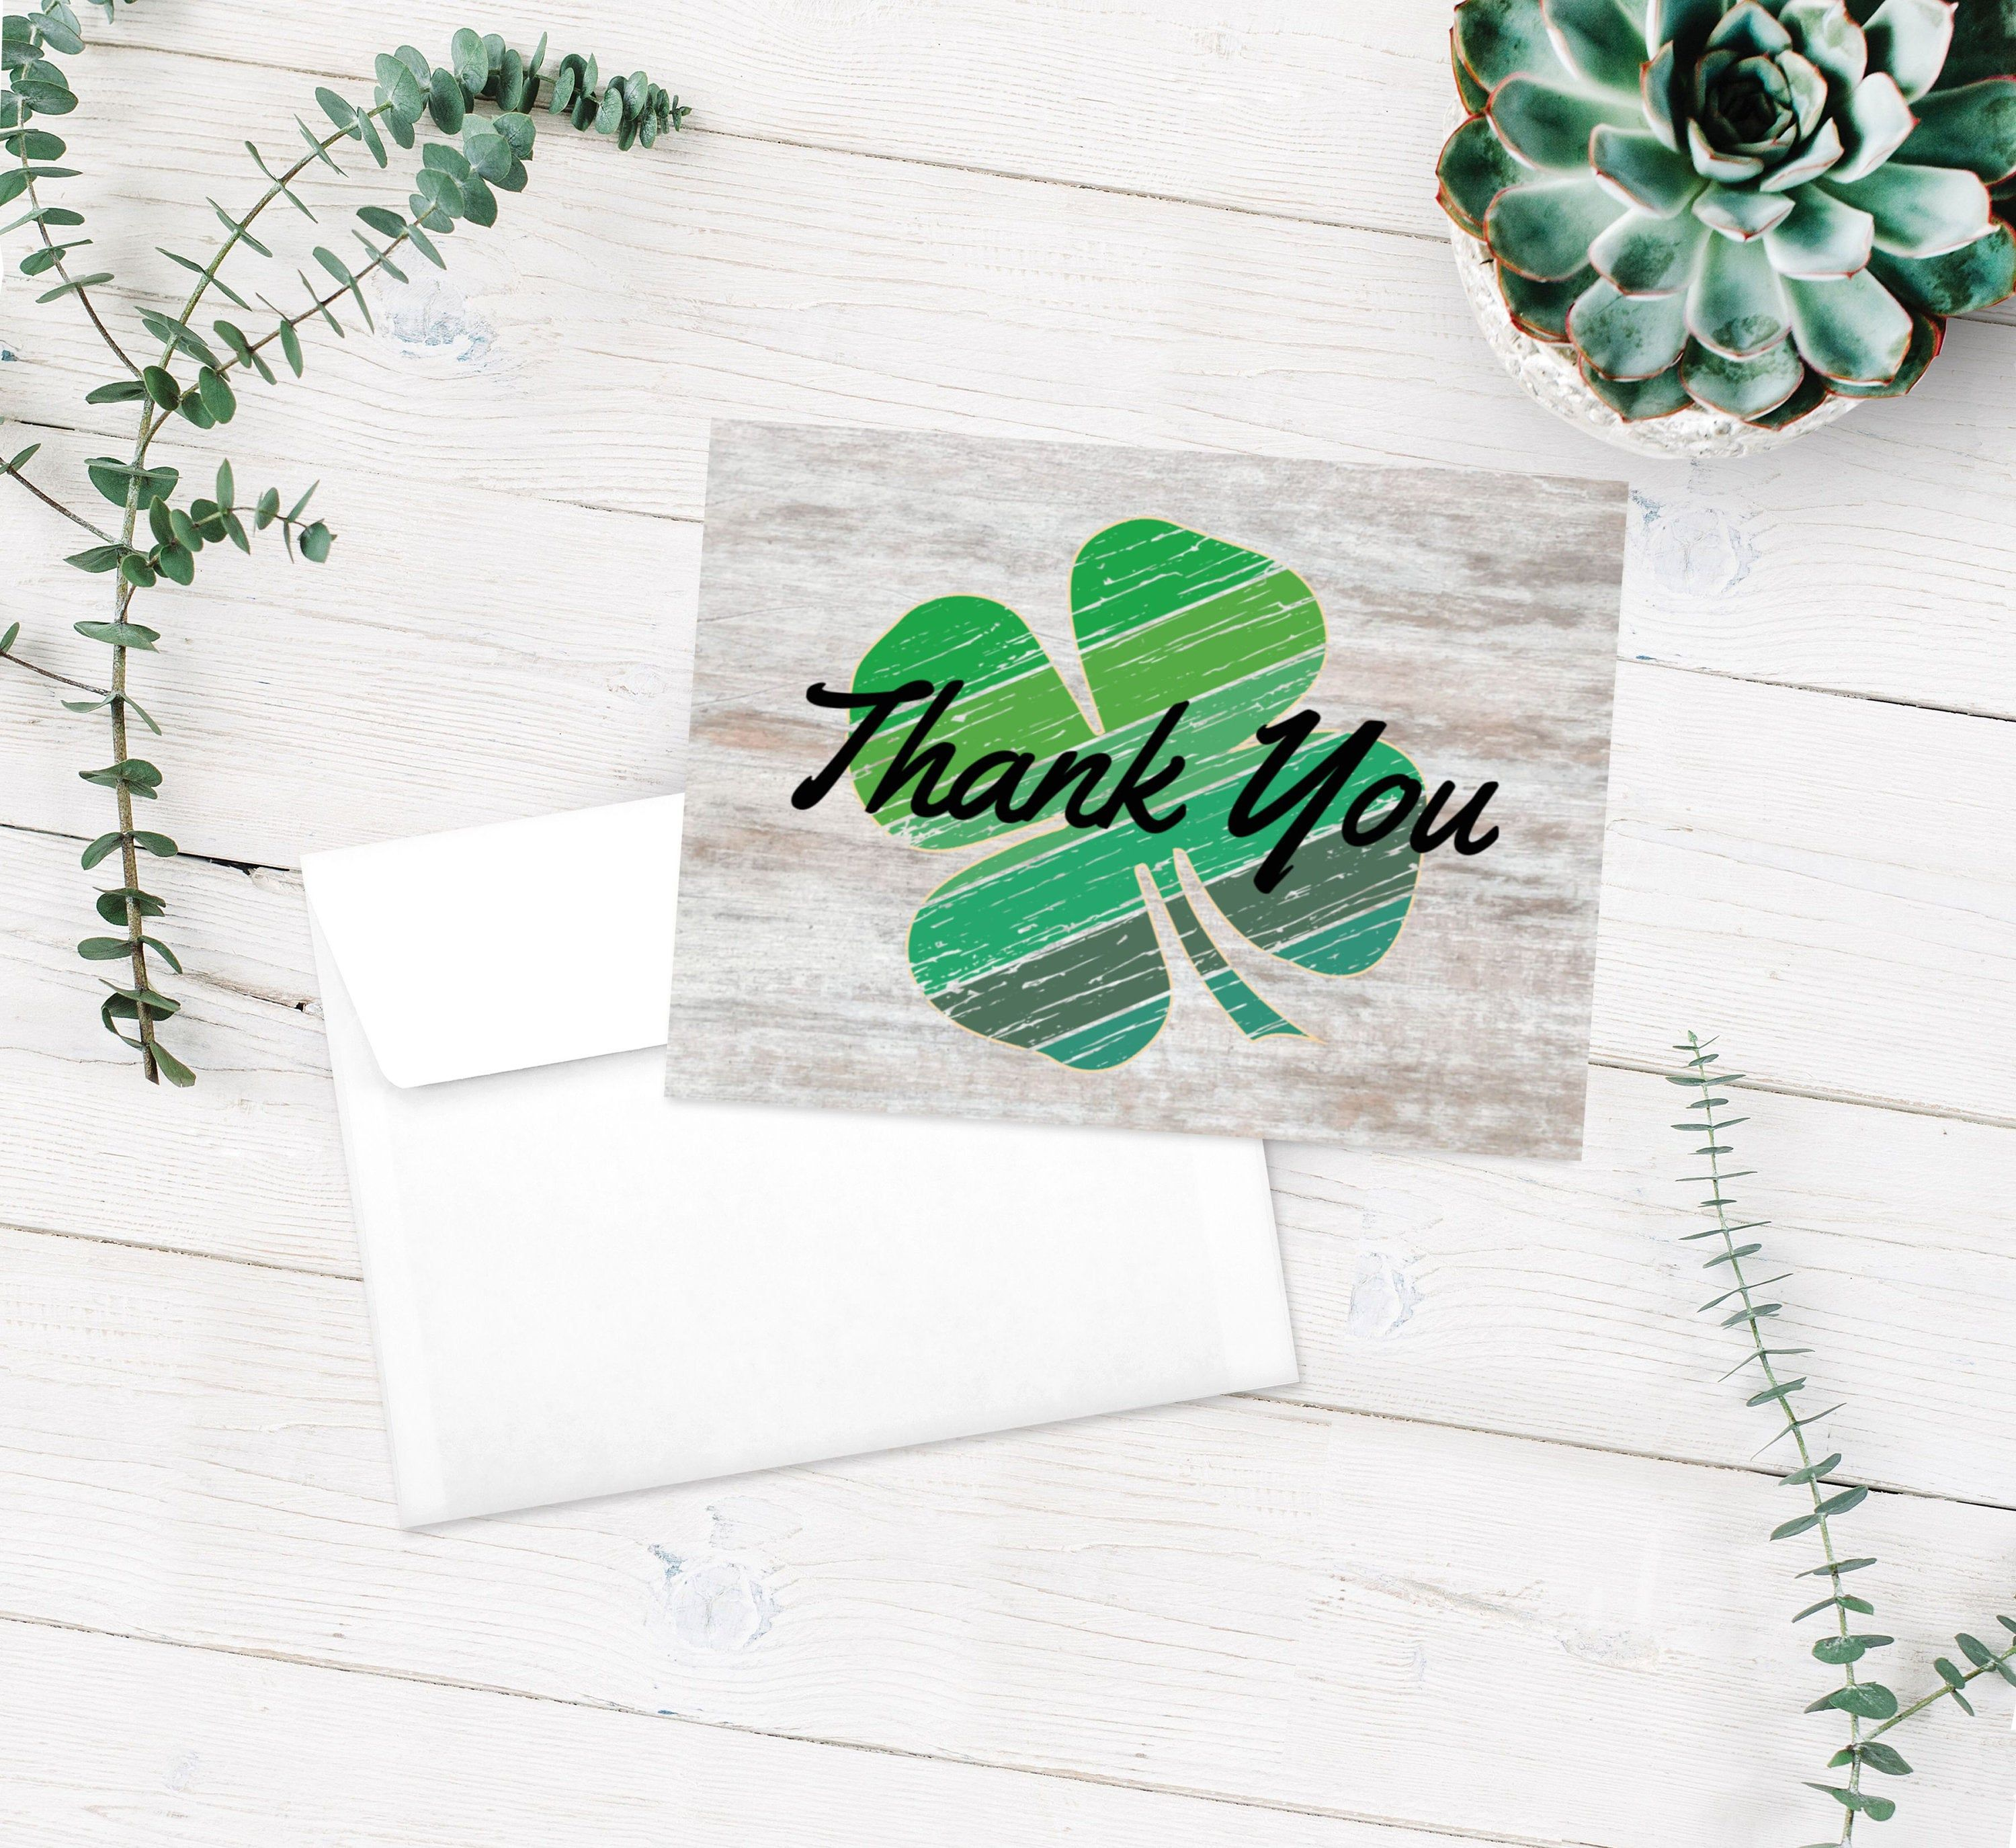 Distressed Clover Blank Thank You Card Pig Goat Lamb Steer Heifer Chicken Bunny Buyer Appreciation Buyer Thank You Cards Thank You Cards Your Cards Appreciation Cards